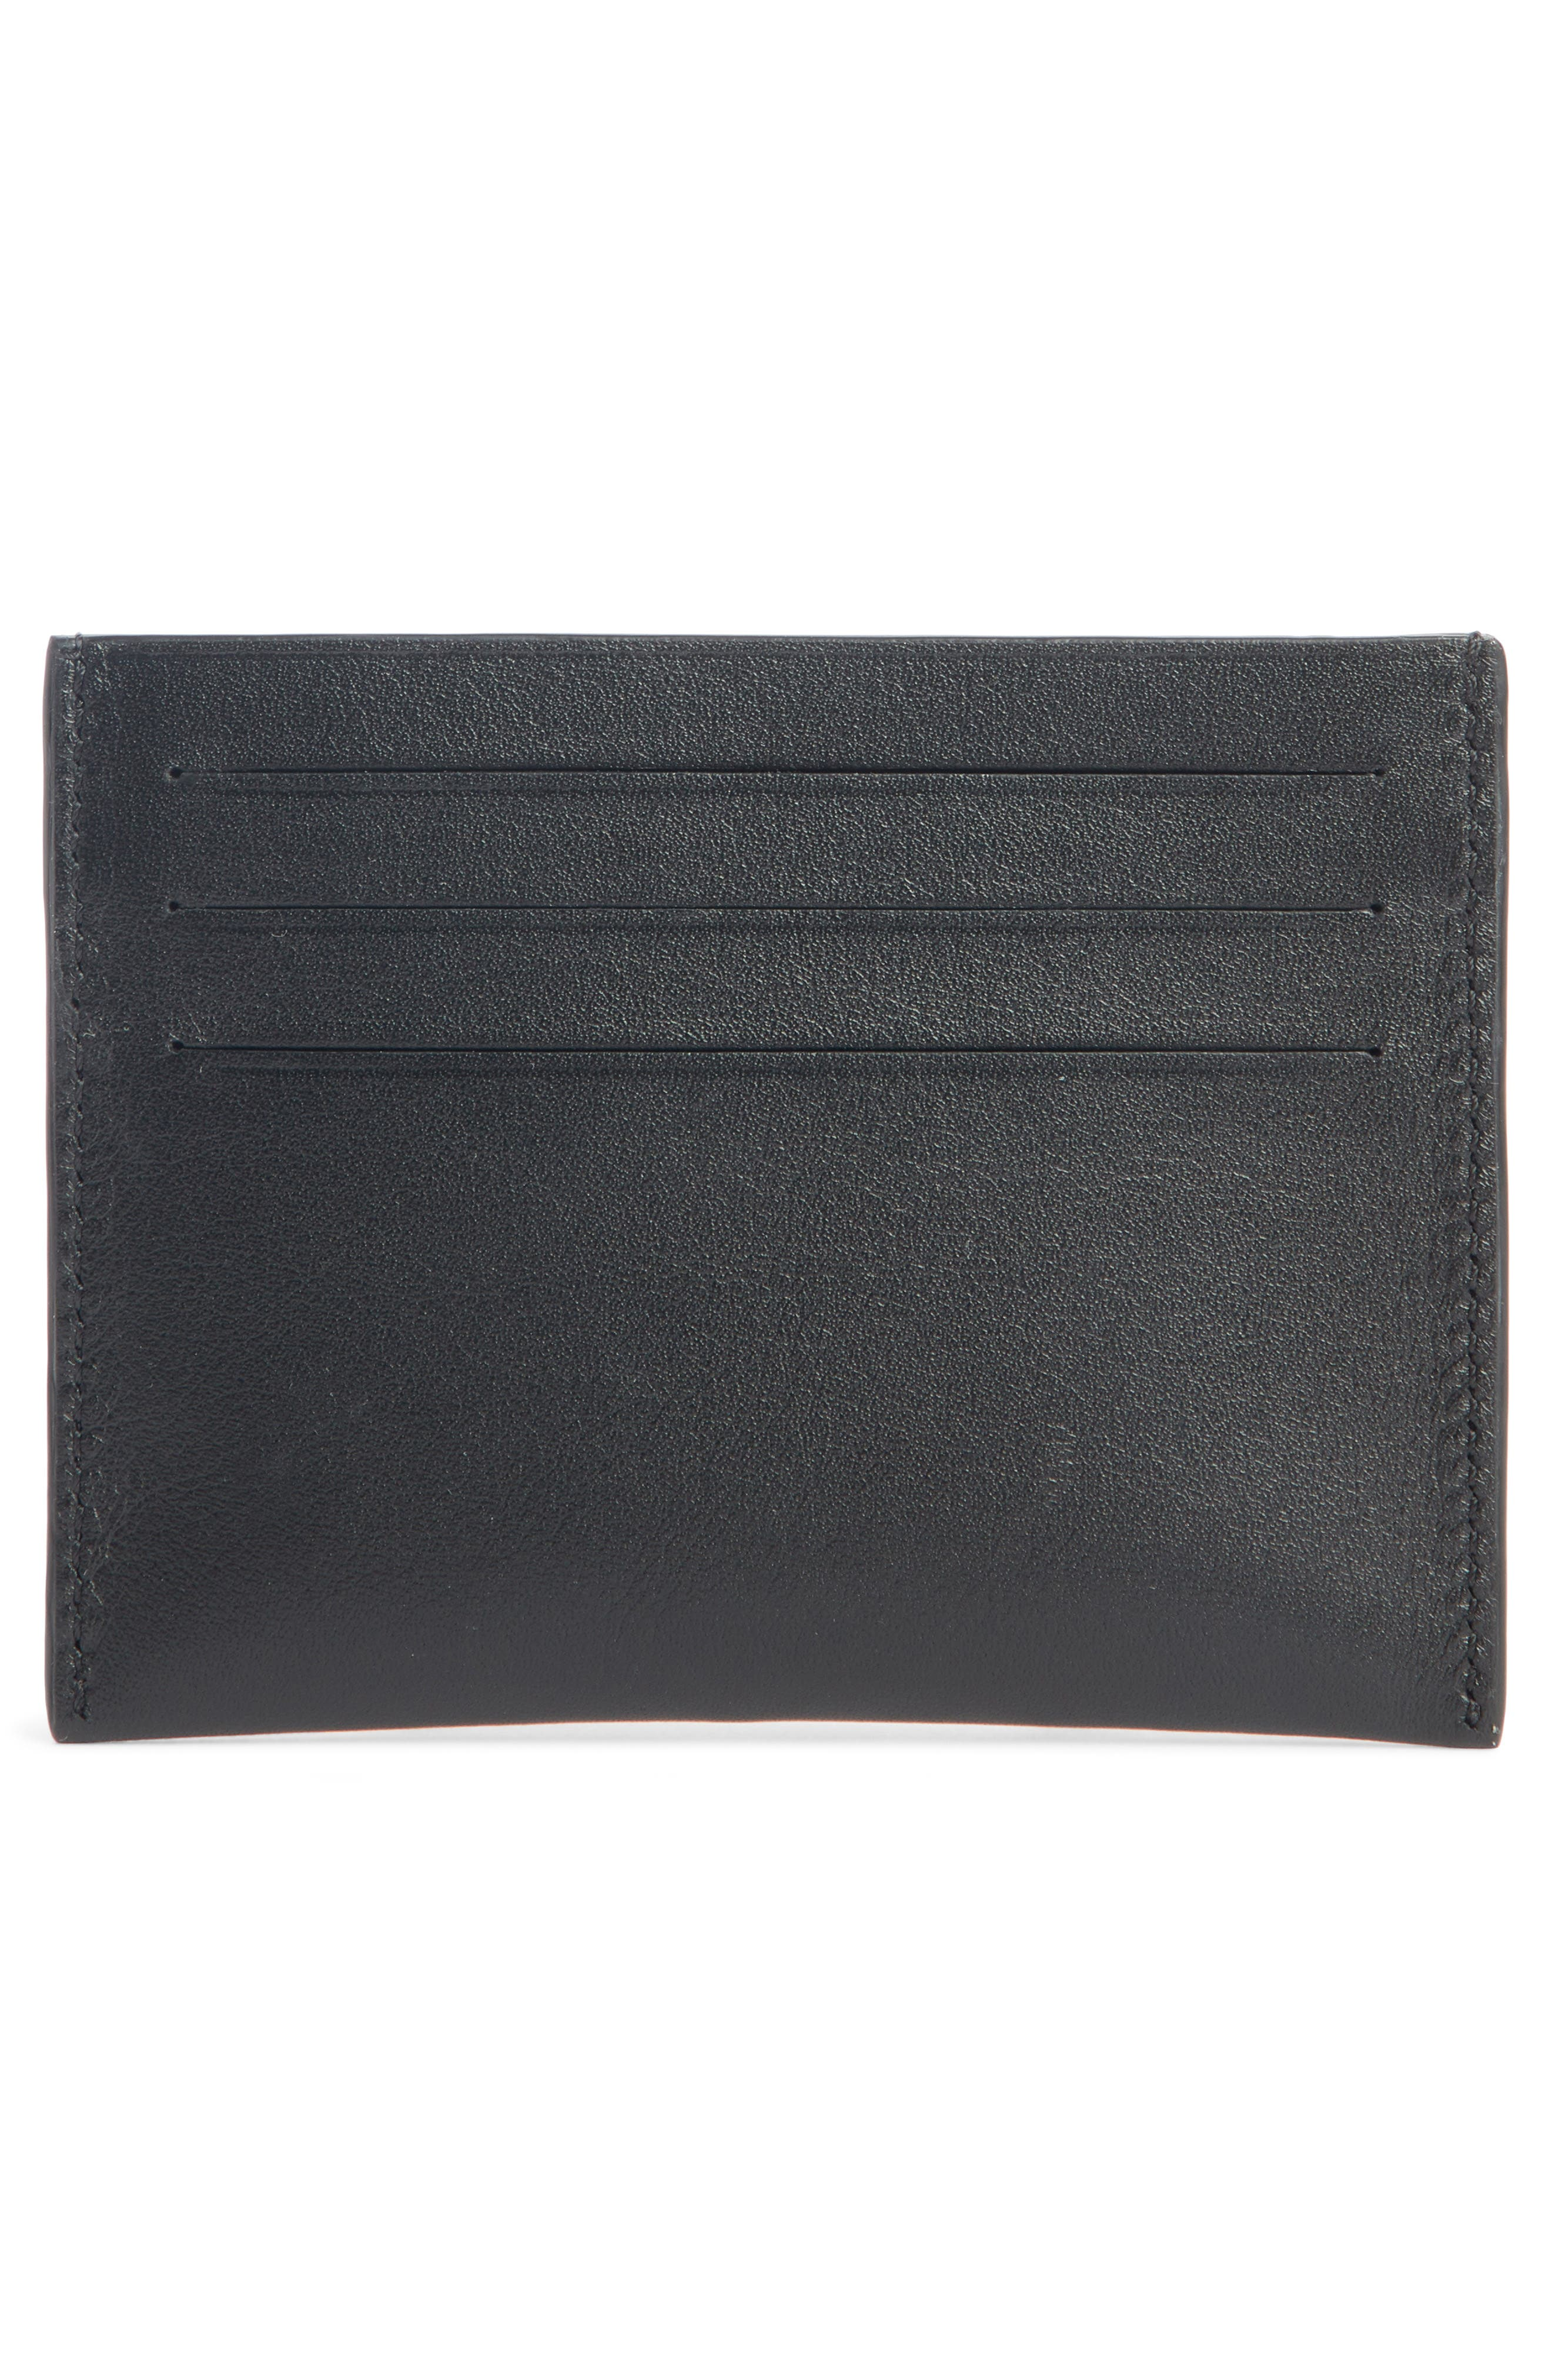 Address Leather Card Case,                             Alternate thumbnail 2, color,                             BLACK